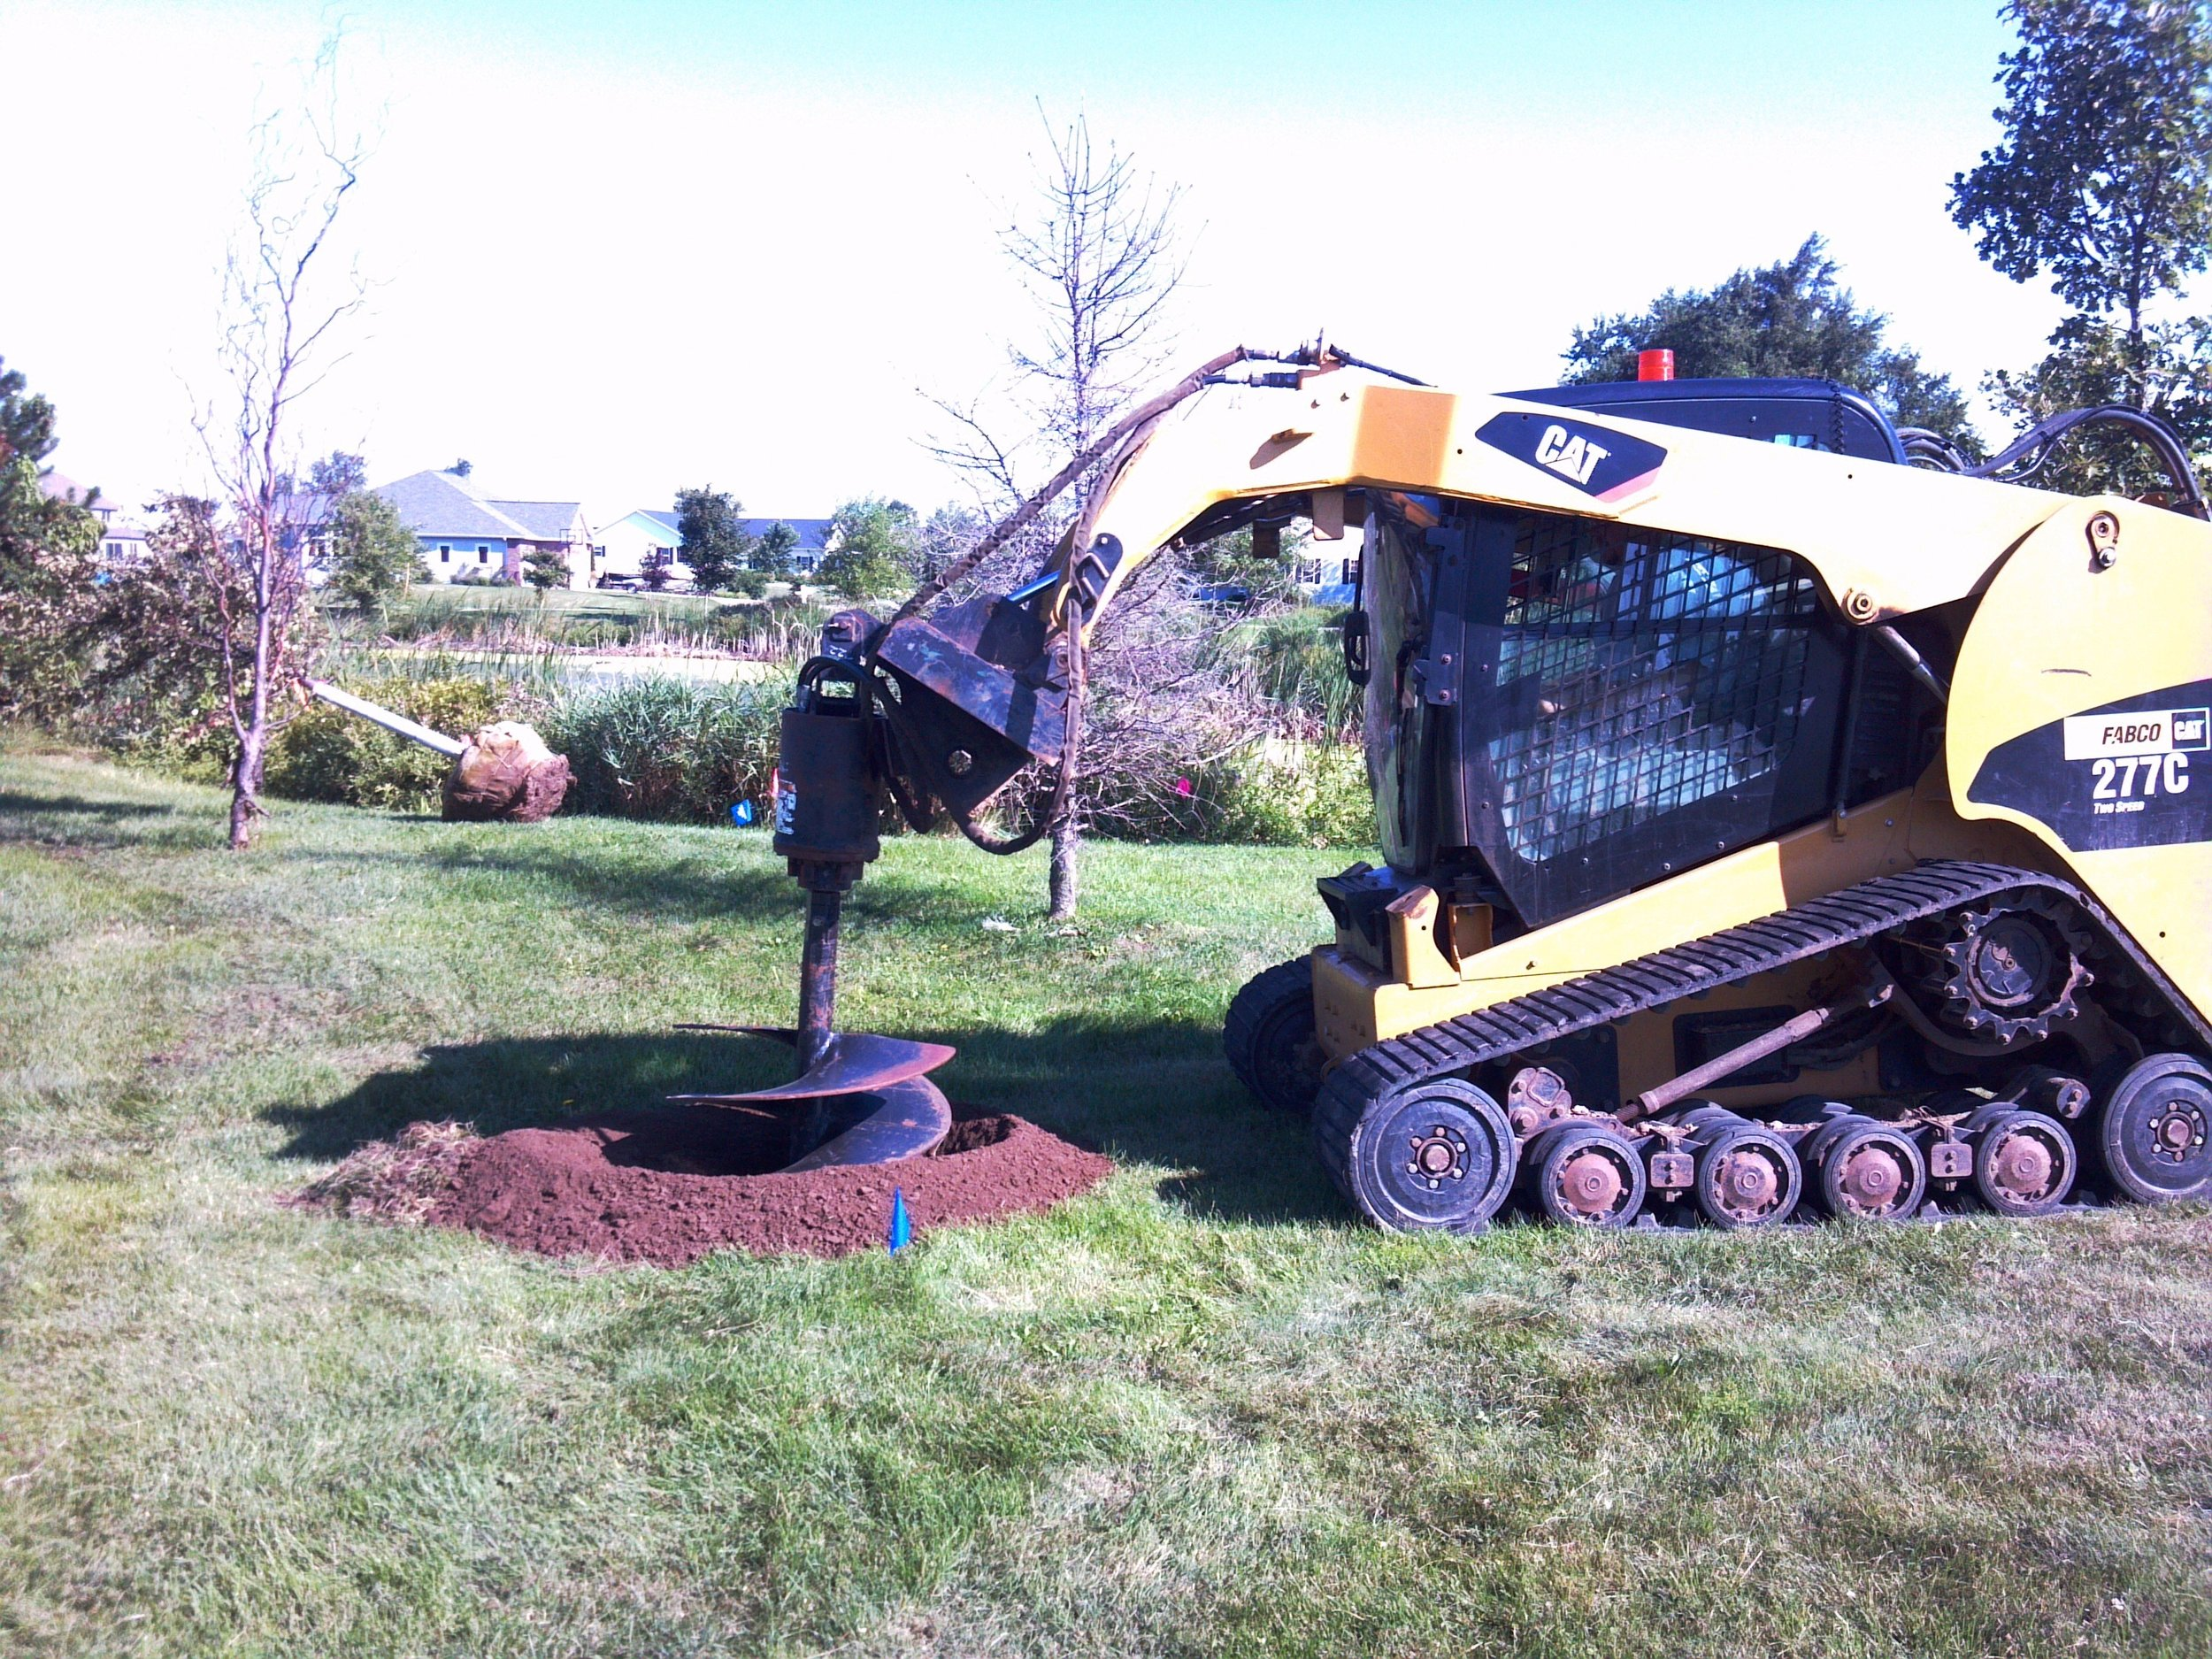 Landscaping can be completed much more quickly with the right equipment